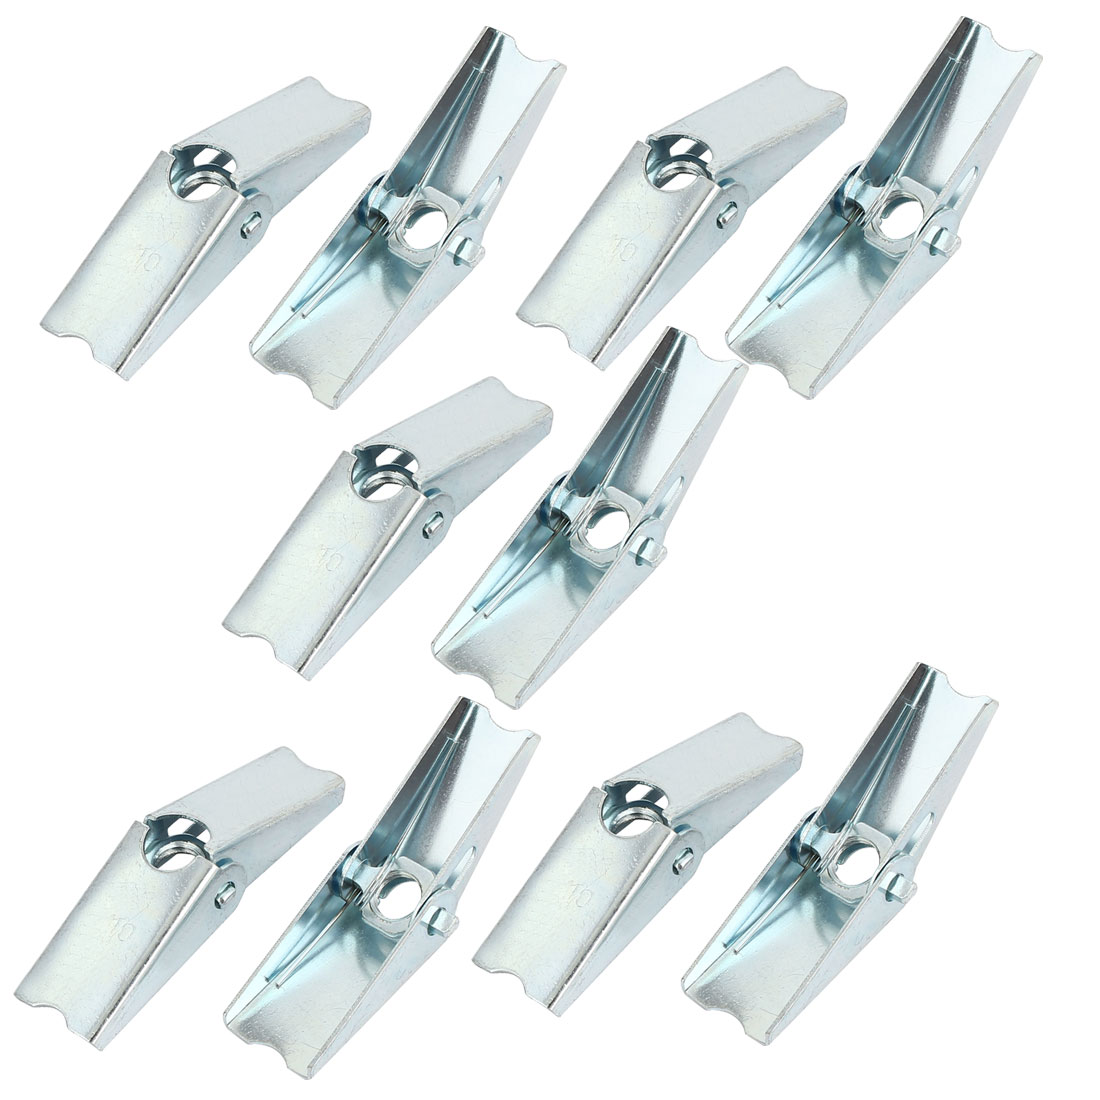 M10 Dia Female Thread Spring Loaded Hollow Wall Anchor Toggle Wing Nut 10pcs